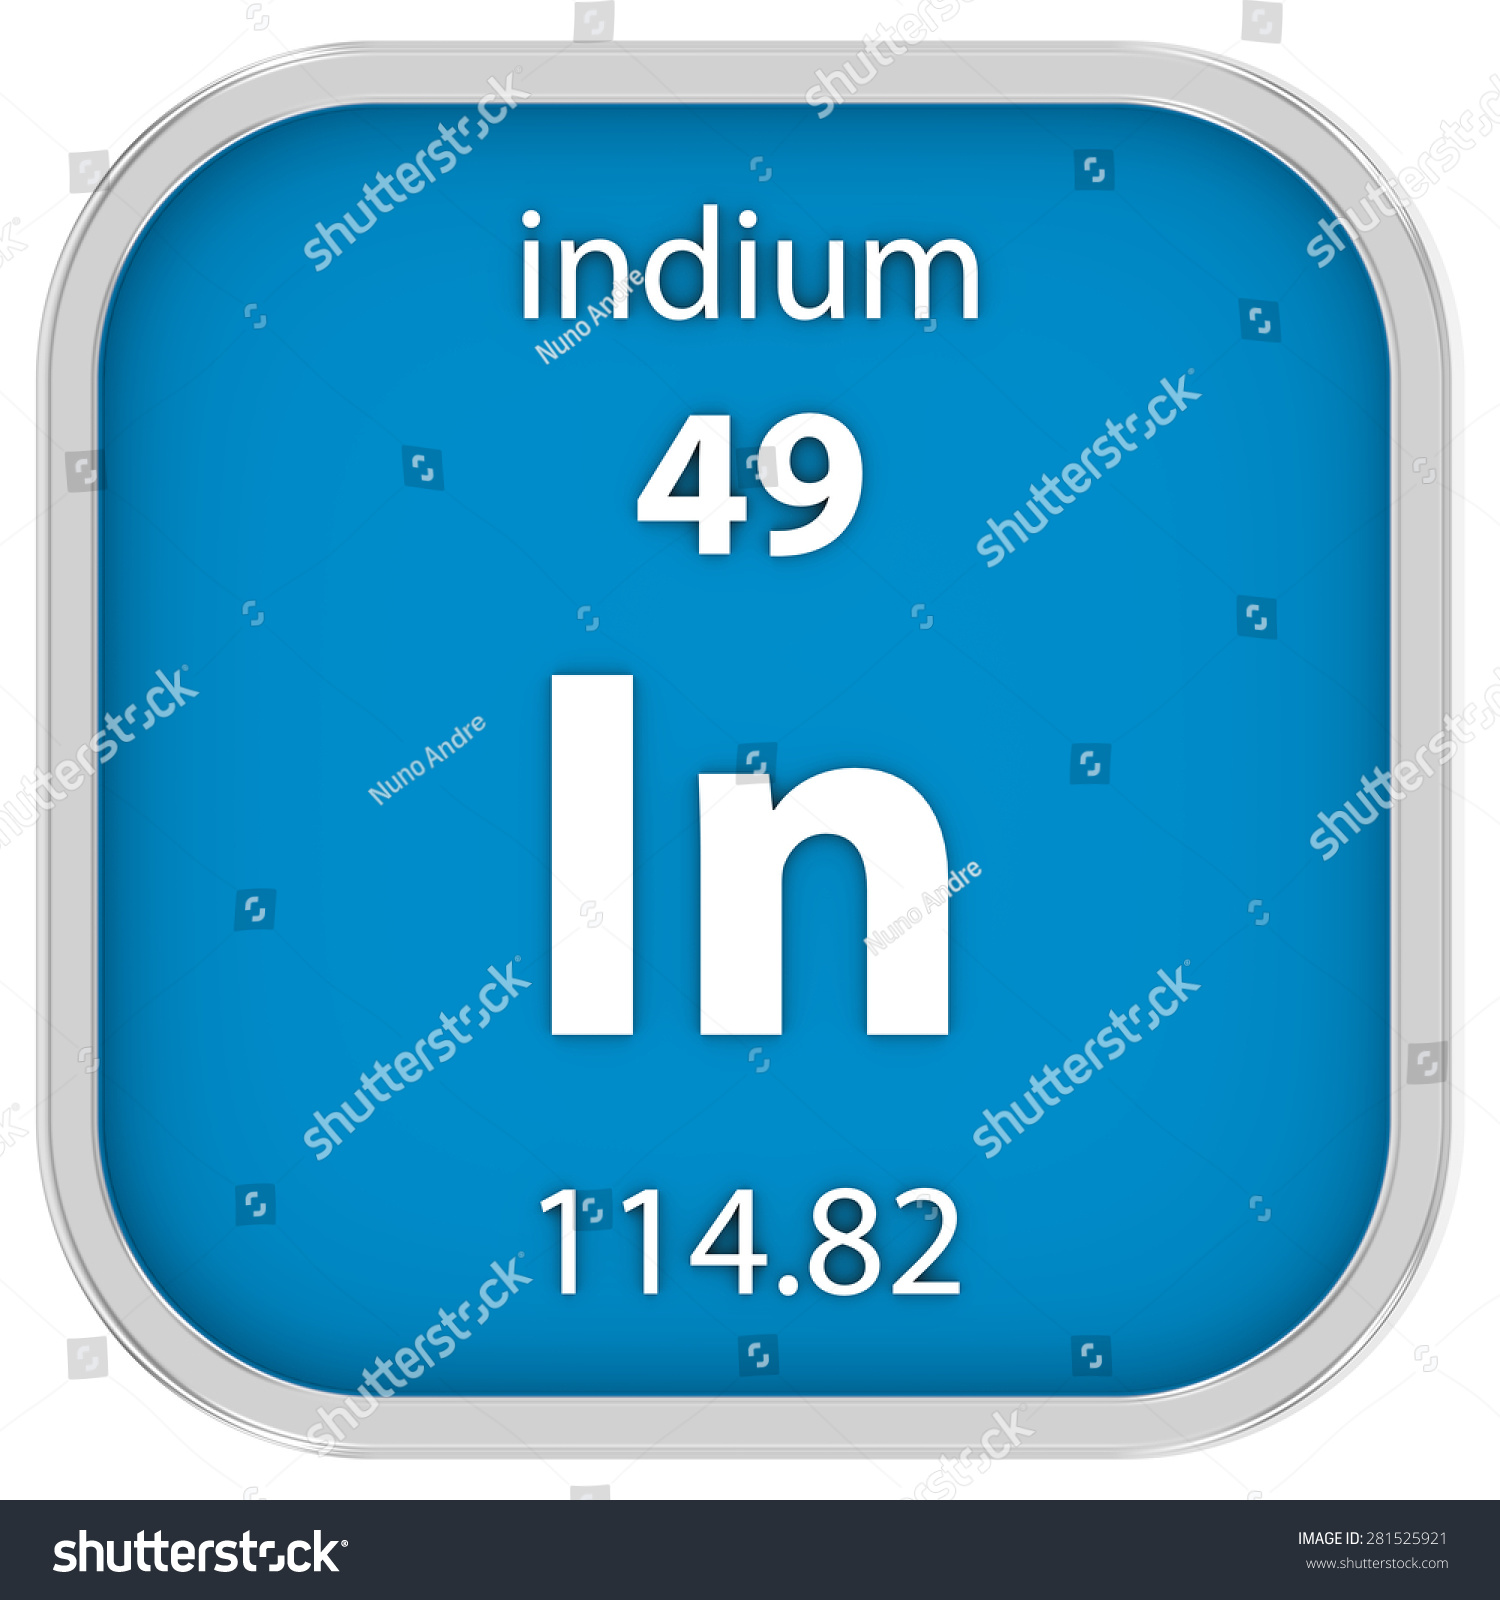 Indium on the periodic table image collections periodic table images indium material on periodic table part stock illustration indium material on the periodic table part of gamestrikefo Image collections